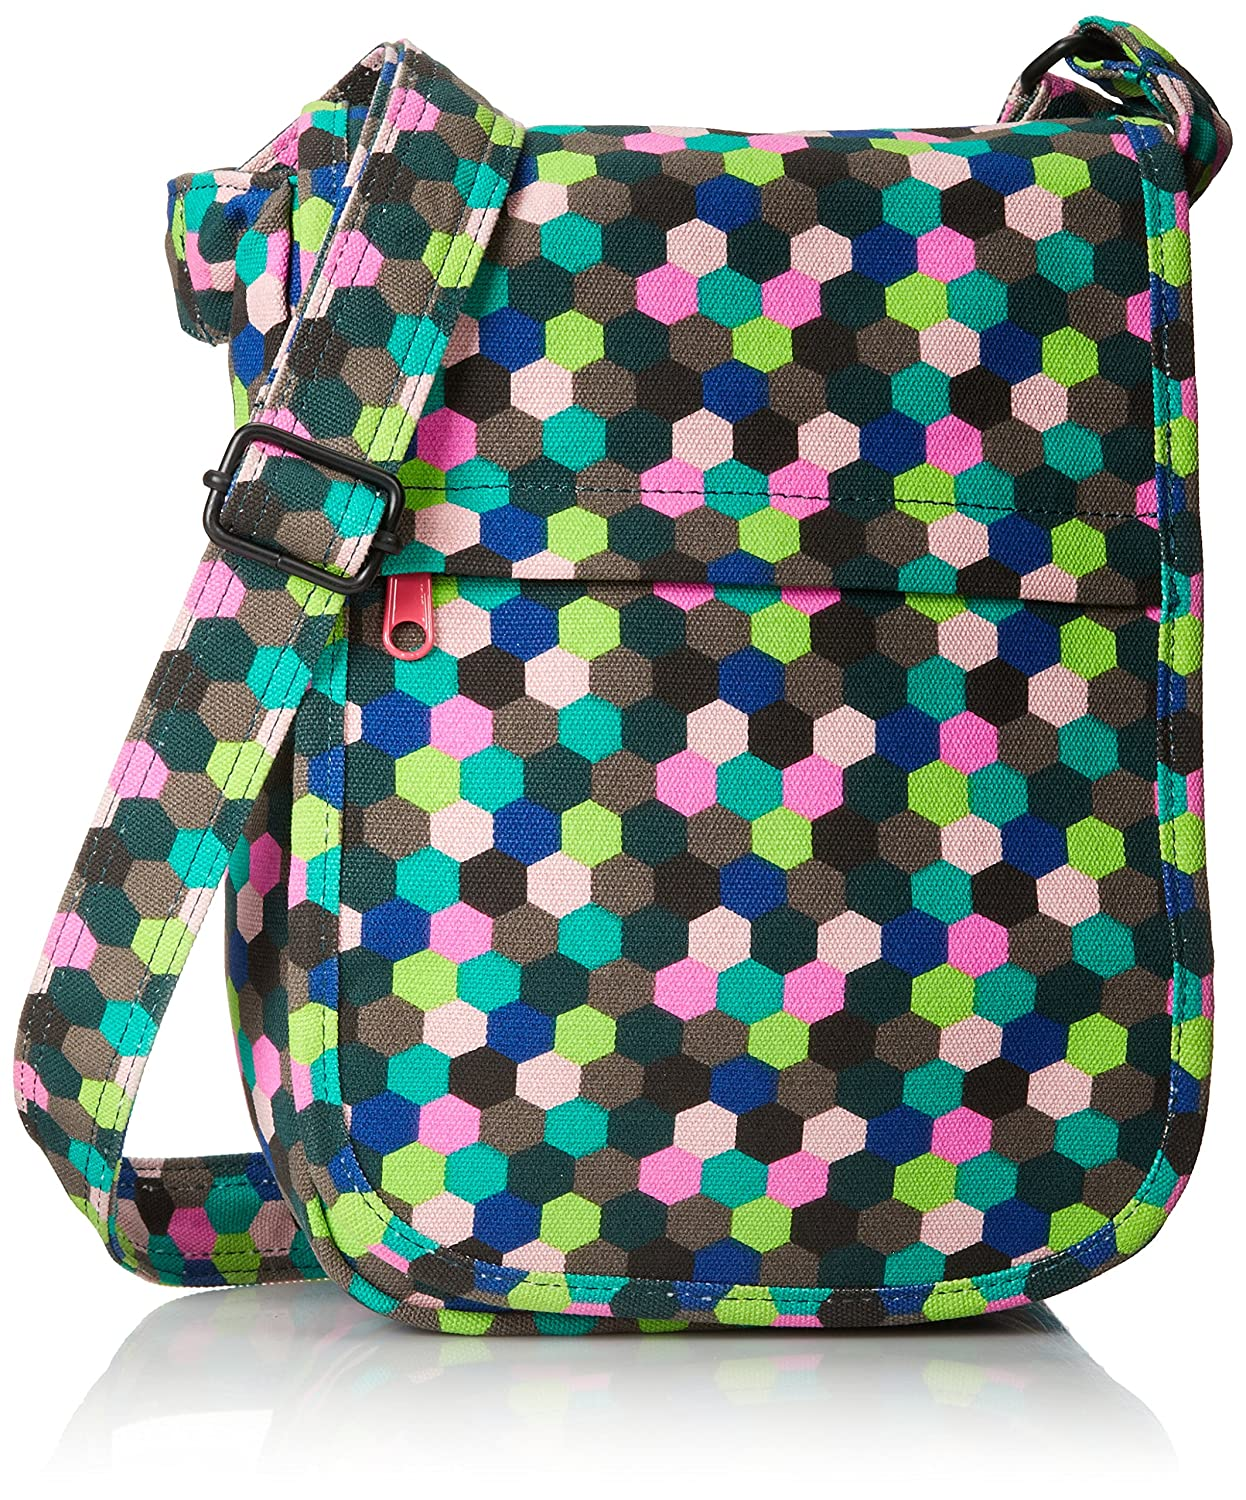 Kavu Kicker Shoulder Bag 48